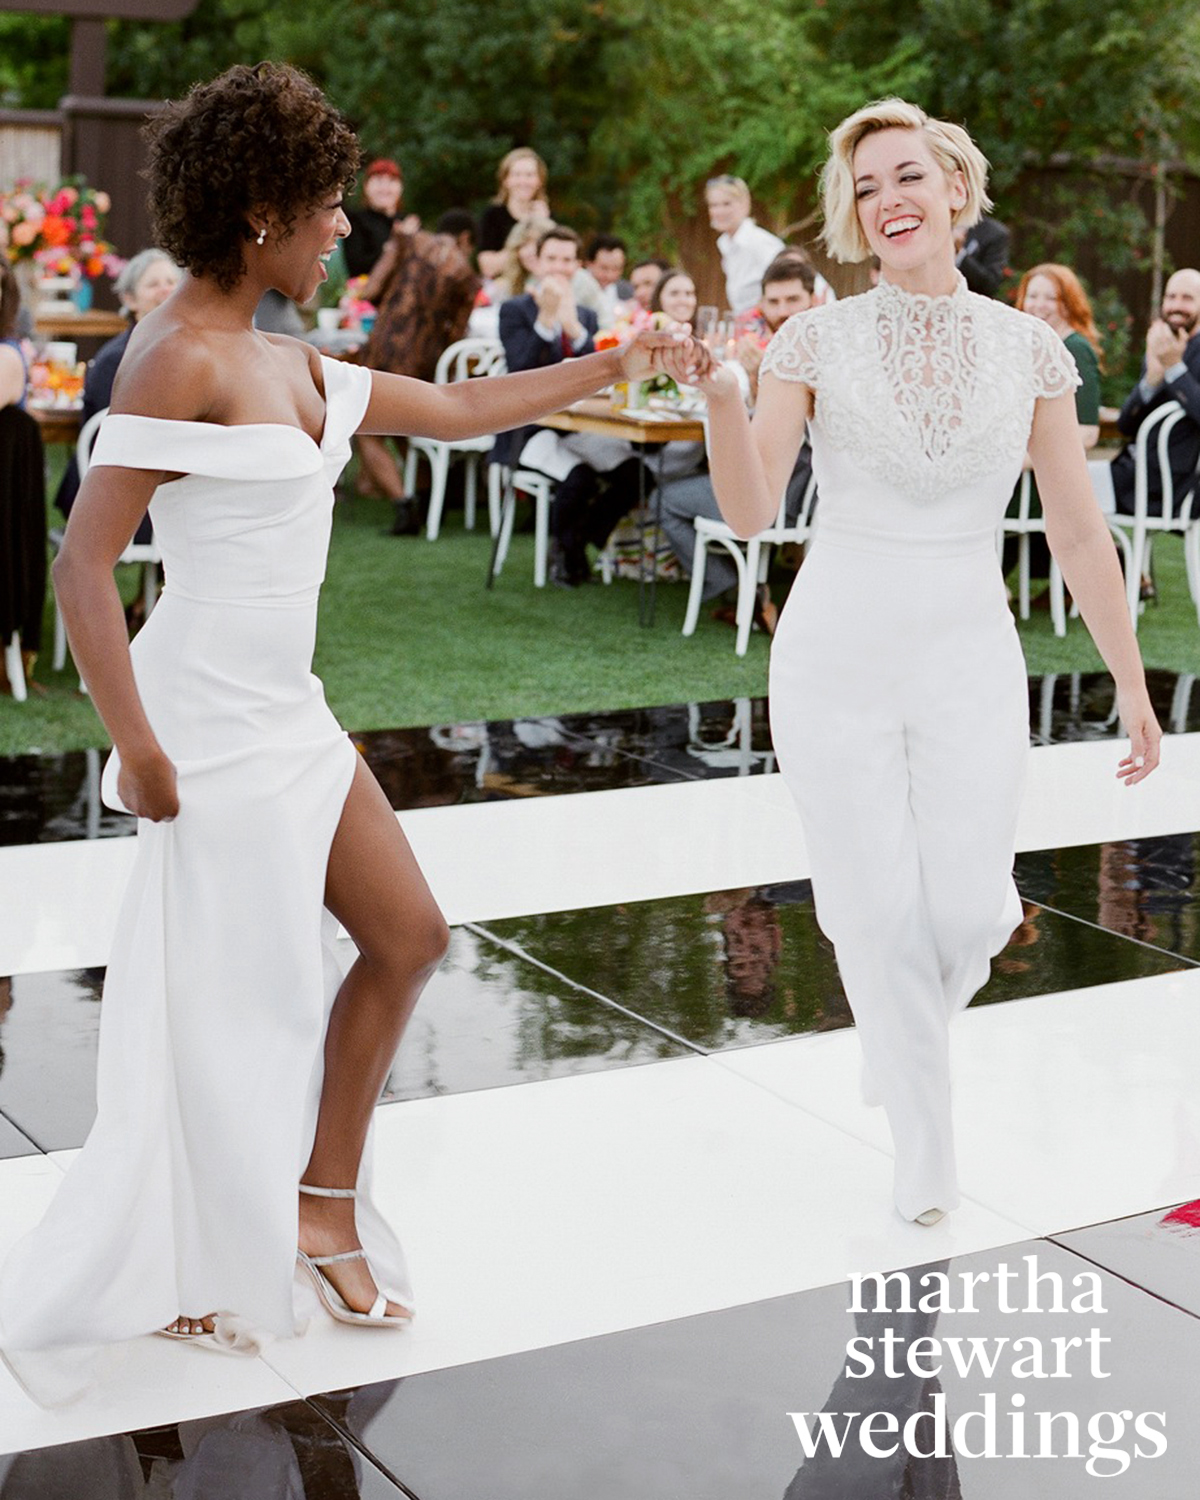 samira wiley lauren morelli wedding dancing